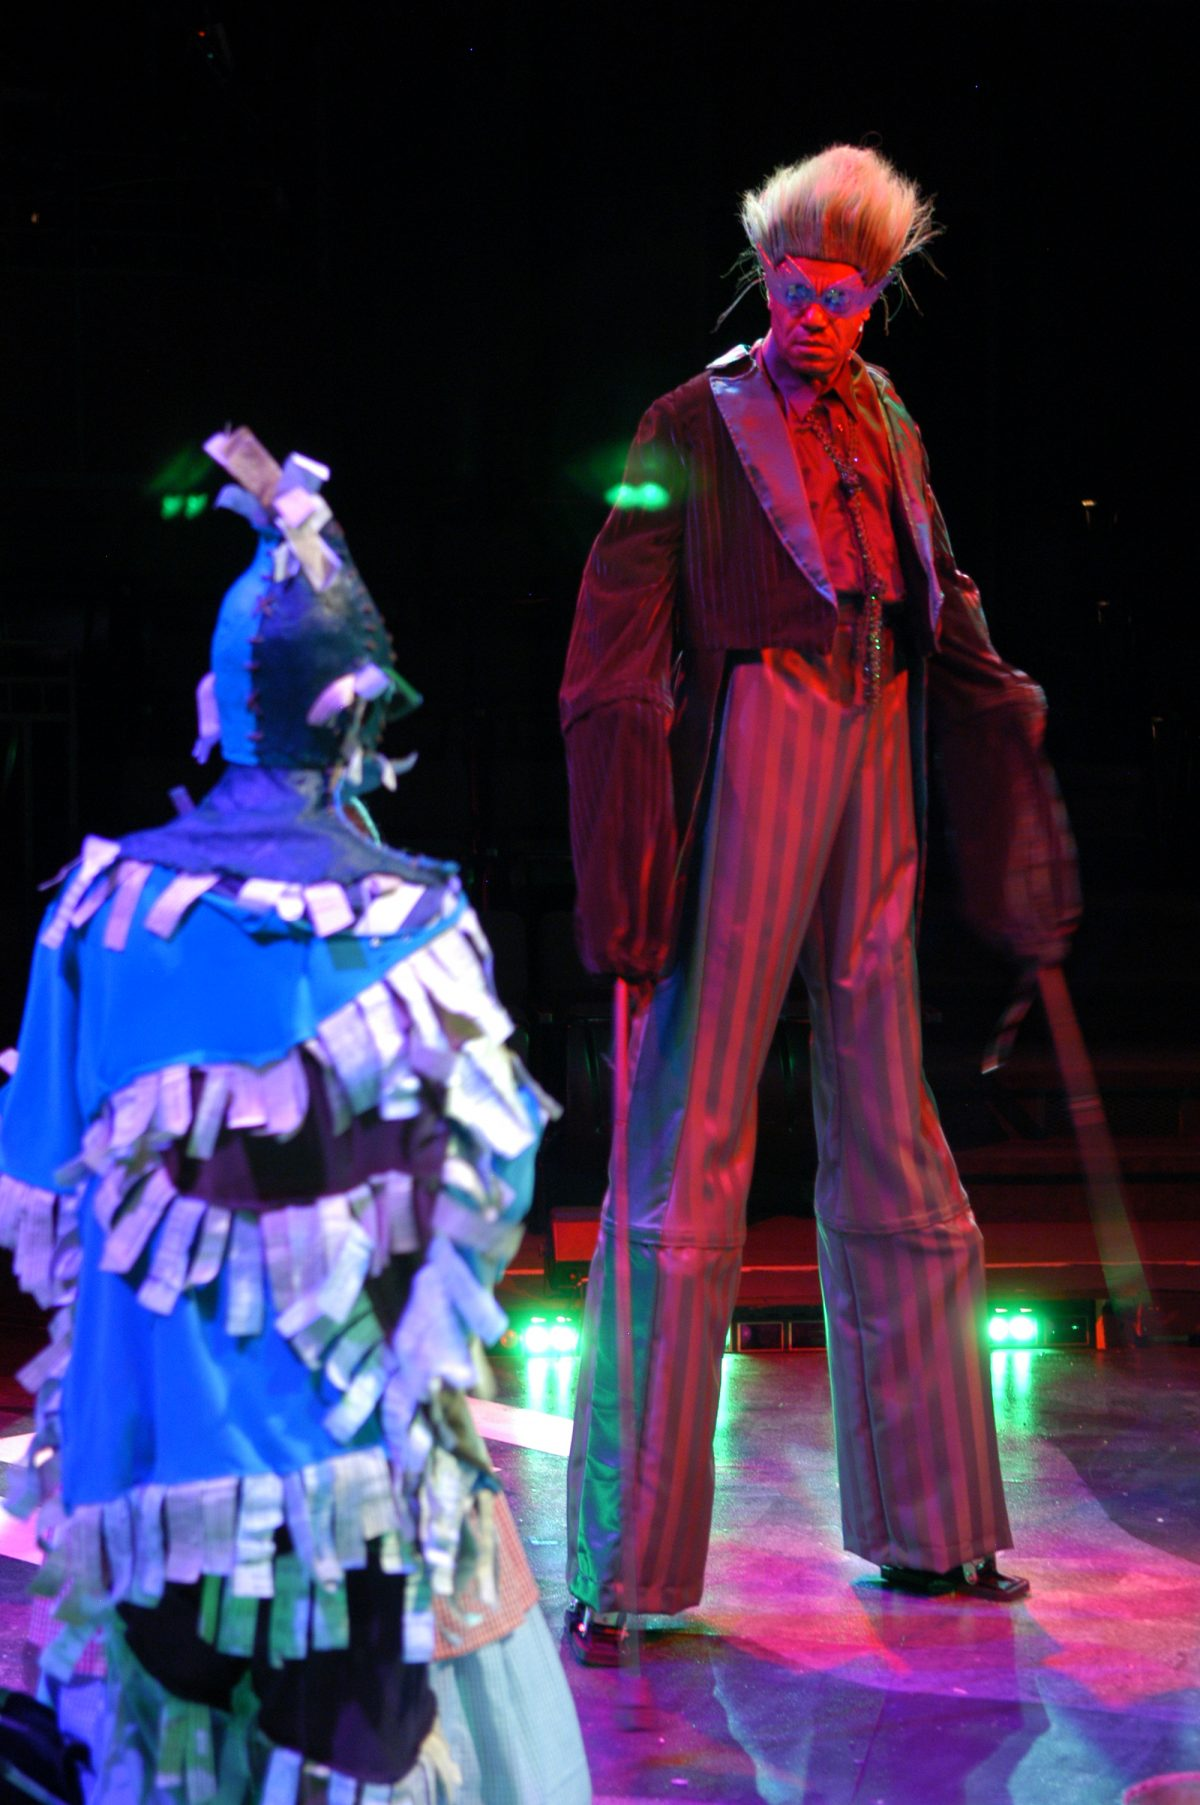 The back of a man in a scarecrow costume facing a man on stilts with striped pants goggles and hair that is sticking straight up.